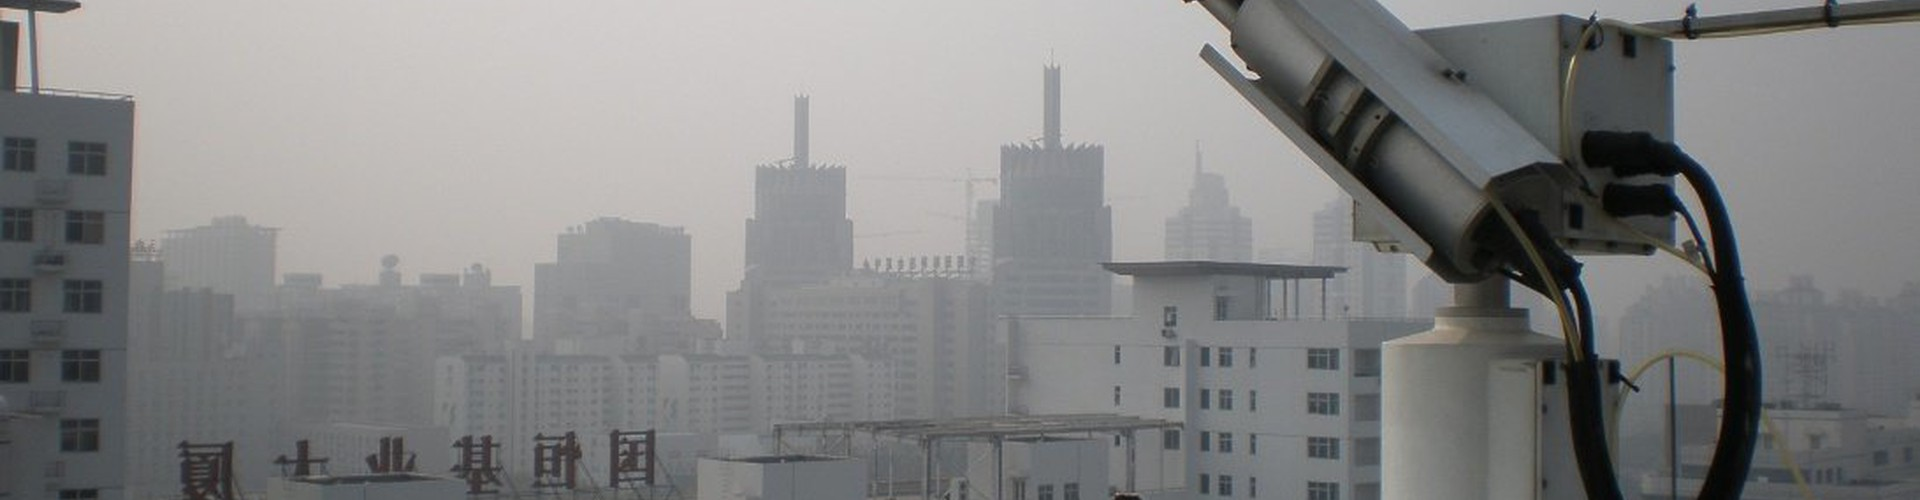 Measuring atmospheric pollution in Beijing, China (II) (Credit: Aristeidis Georgoulias, distributed via imaggeo.egu.eu)